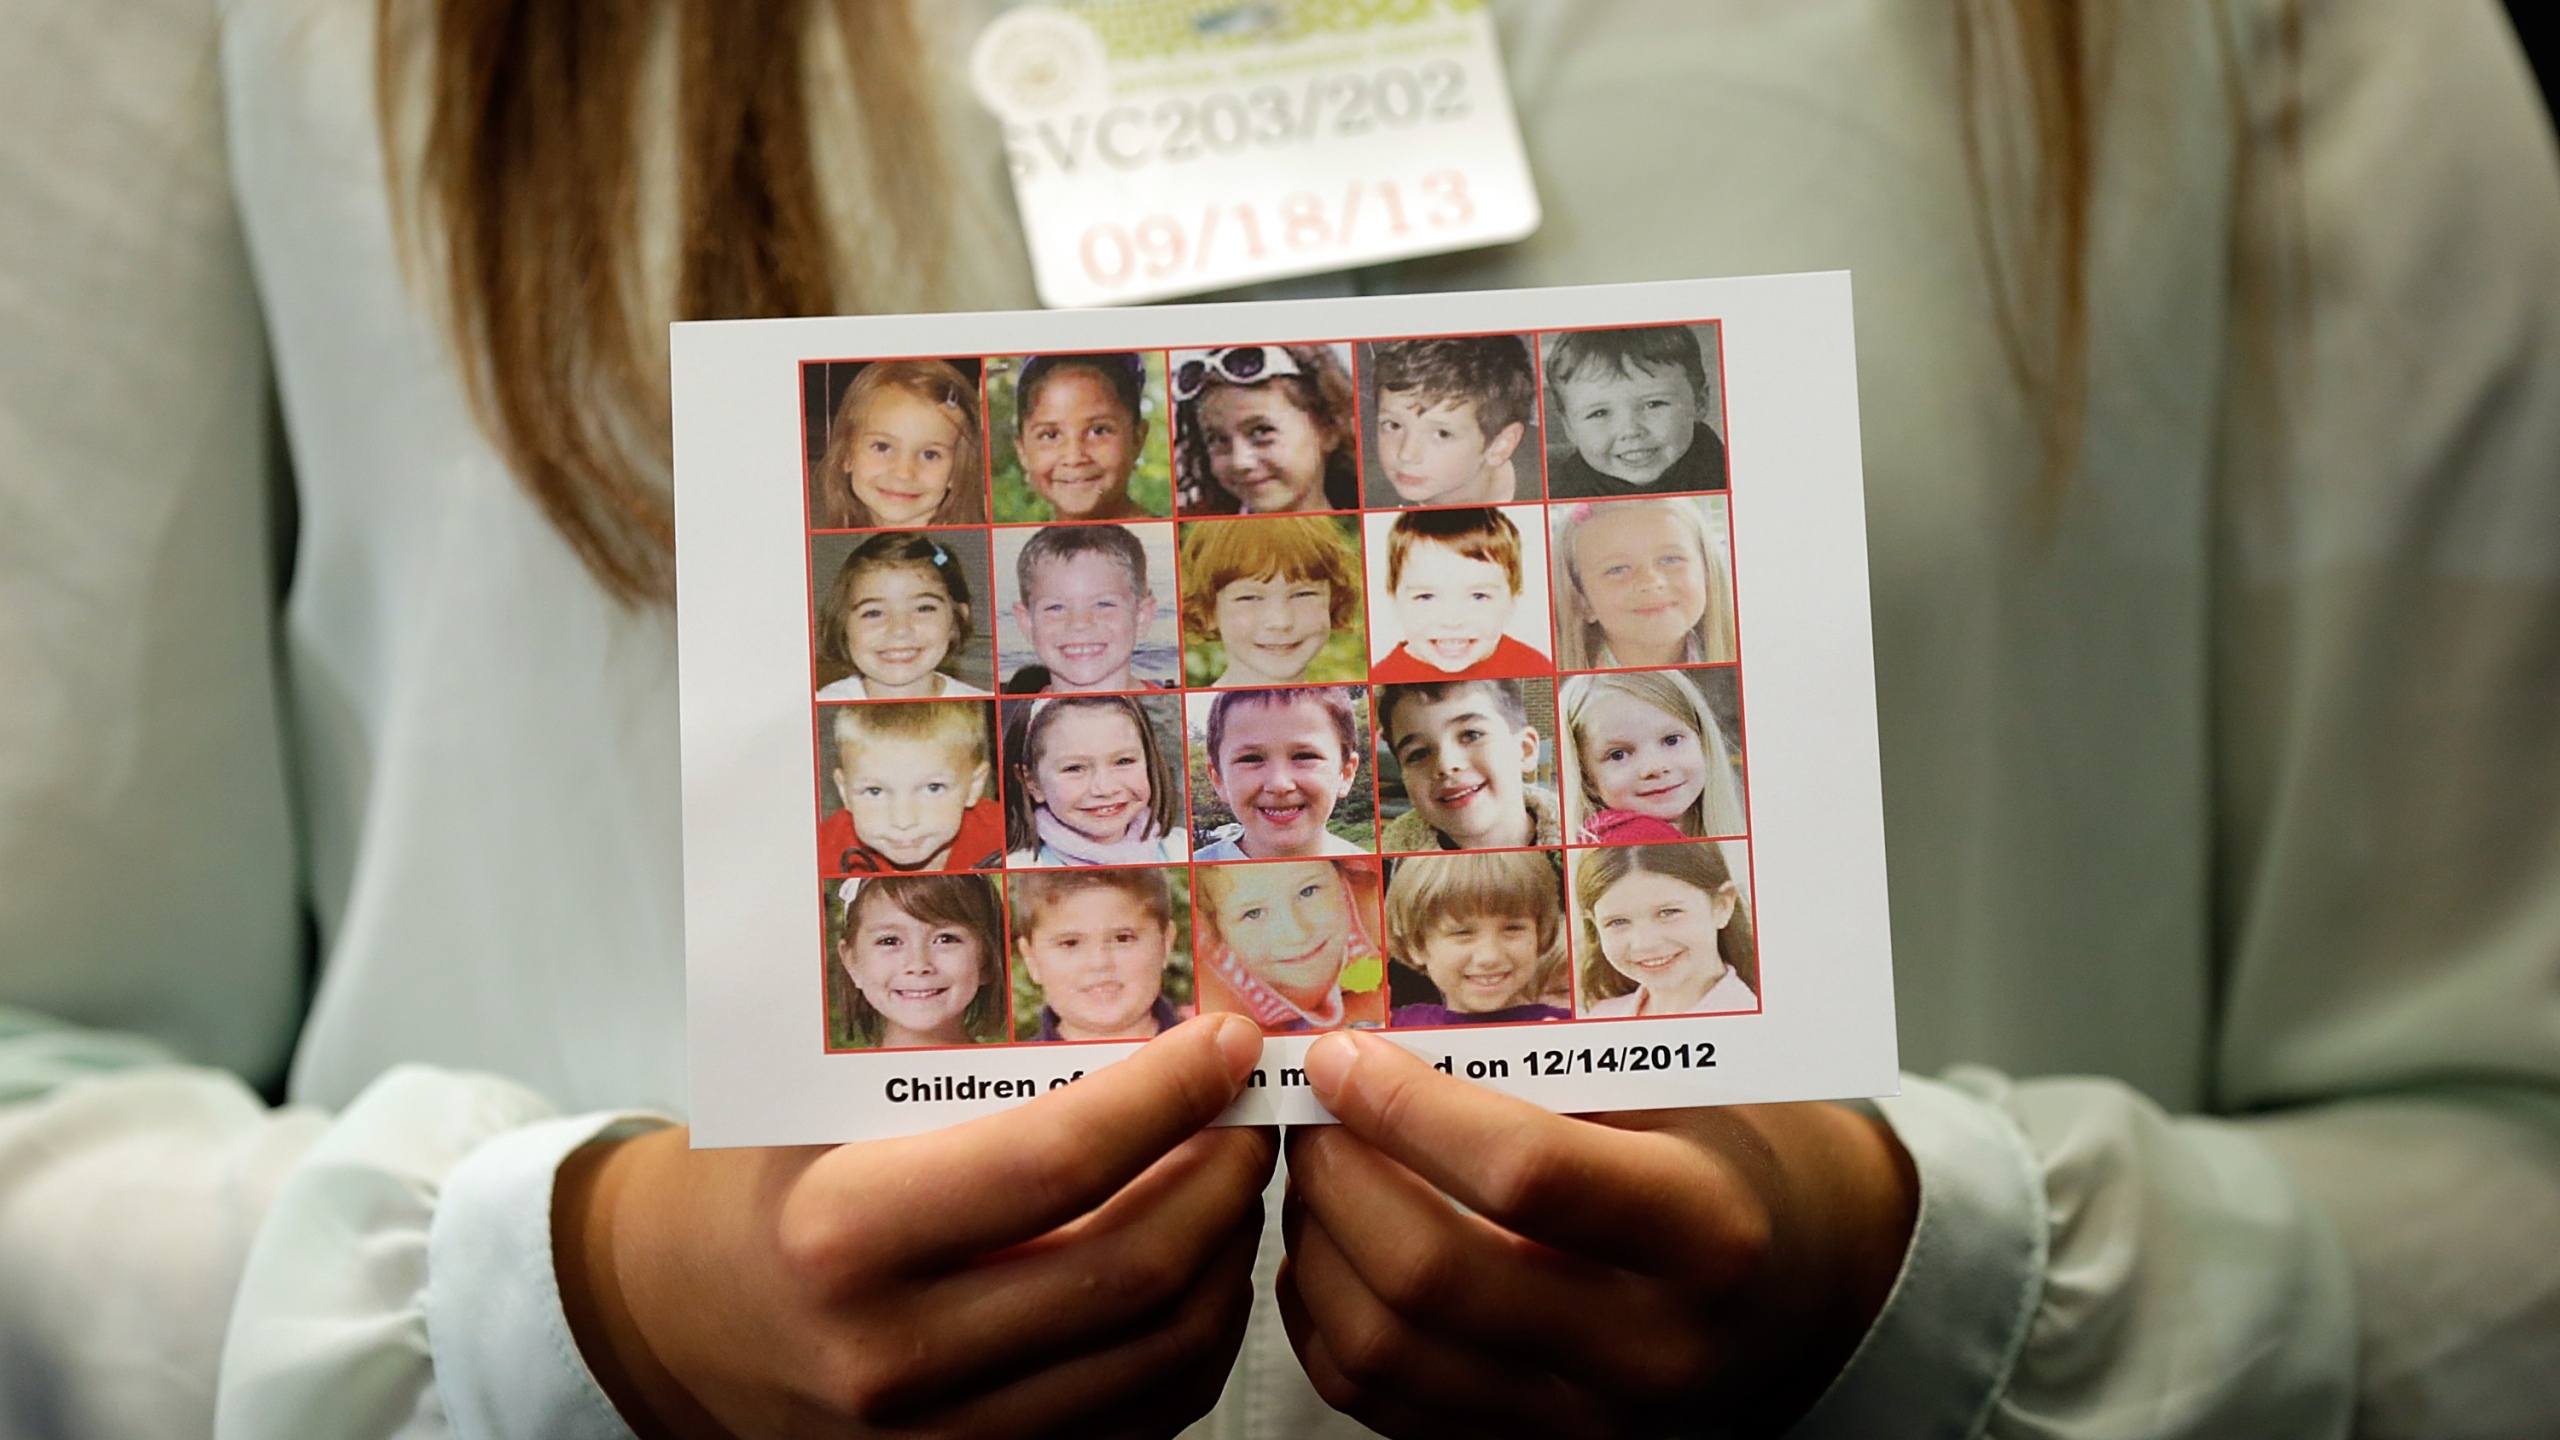 Kyra Murray holds a photo of the victims of the shooting at Sandy Hook Elementary School during a press conference at the U.S. Capitol on Sept. 18, 2013 in Washington, D.C. (Credit: Win McNamee/Getty Images)